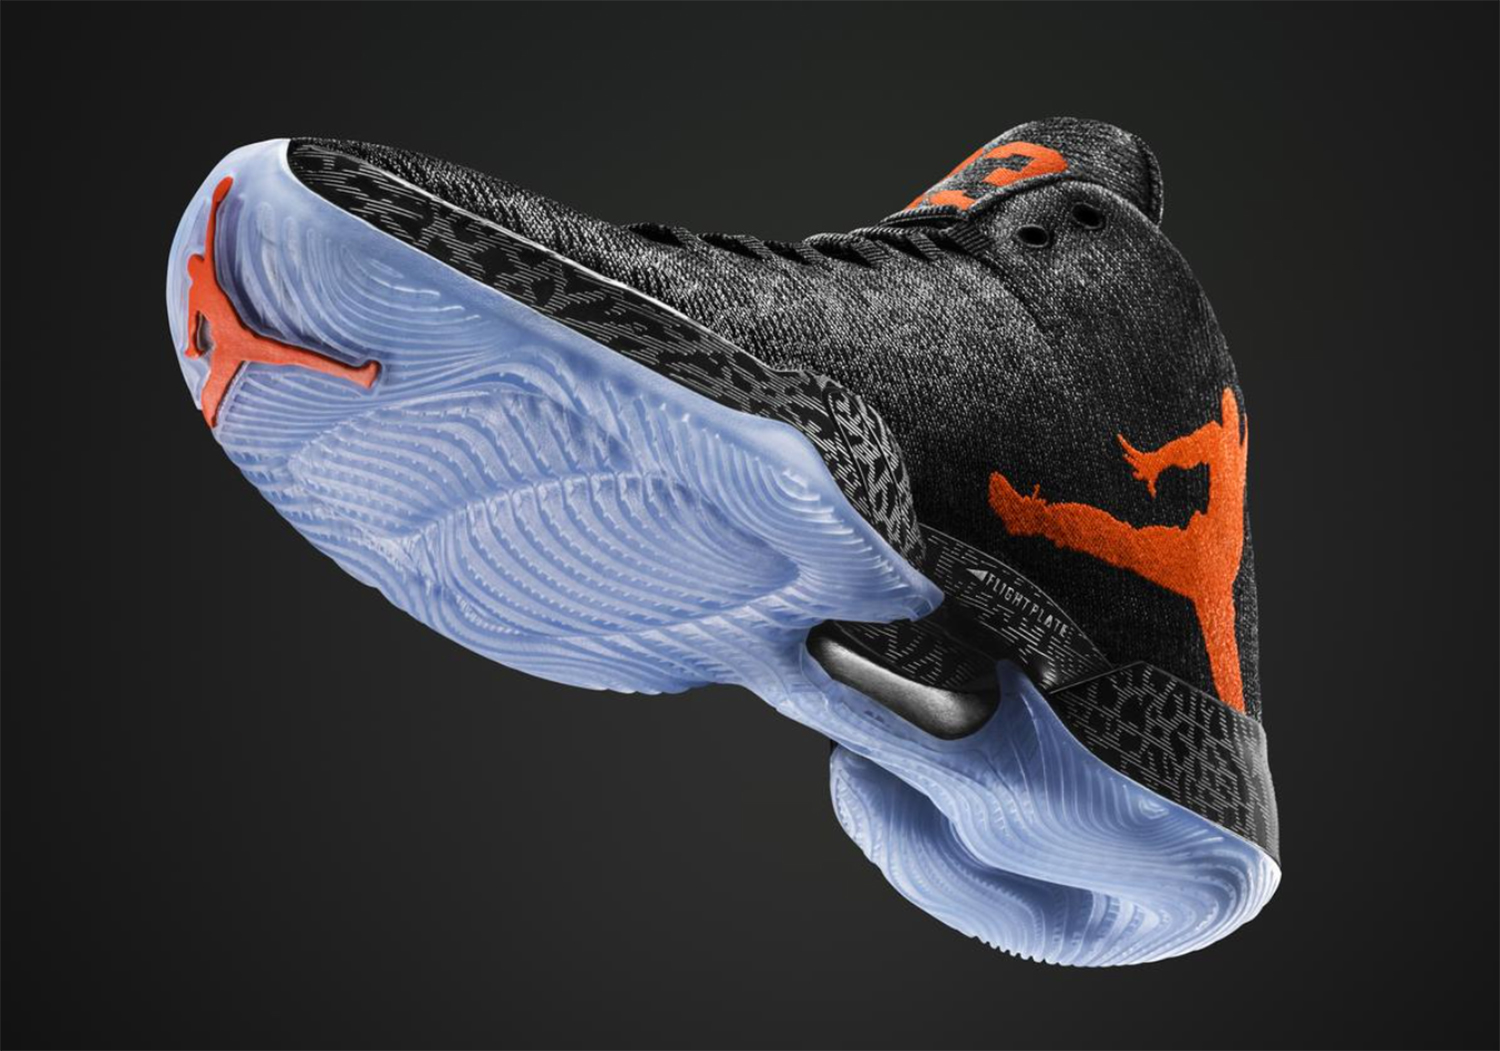 Maybe the carbon plate for lightweight, high-strength support impresses you. Of course, that upper woven in Italy adds a nice lightweight, technical touch too. But if we're being honest, this Russell Westbrook-worn shoe isn't mainly about the technology. No, while nice, the aesthetics get us every time. The top-selling Jordan Brand shoe shines with the Jumpman wrapping the rear of the XX9. Just as it should be.